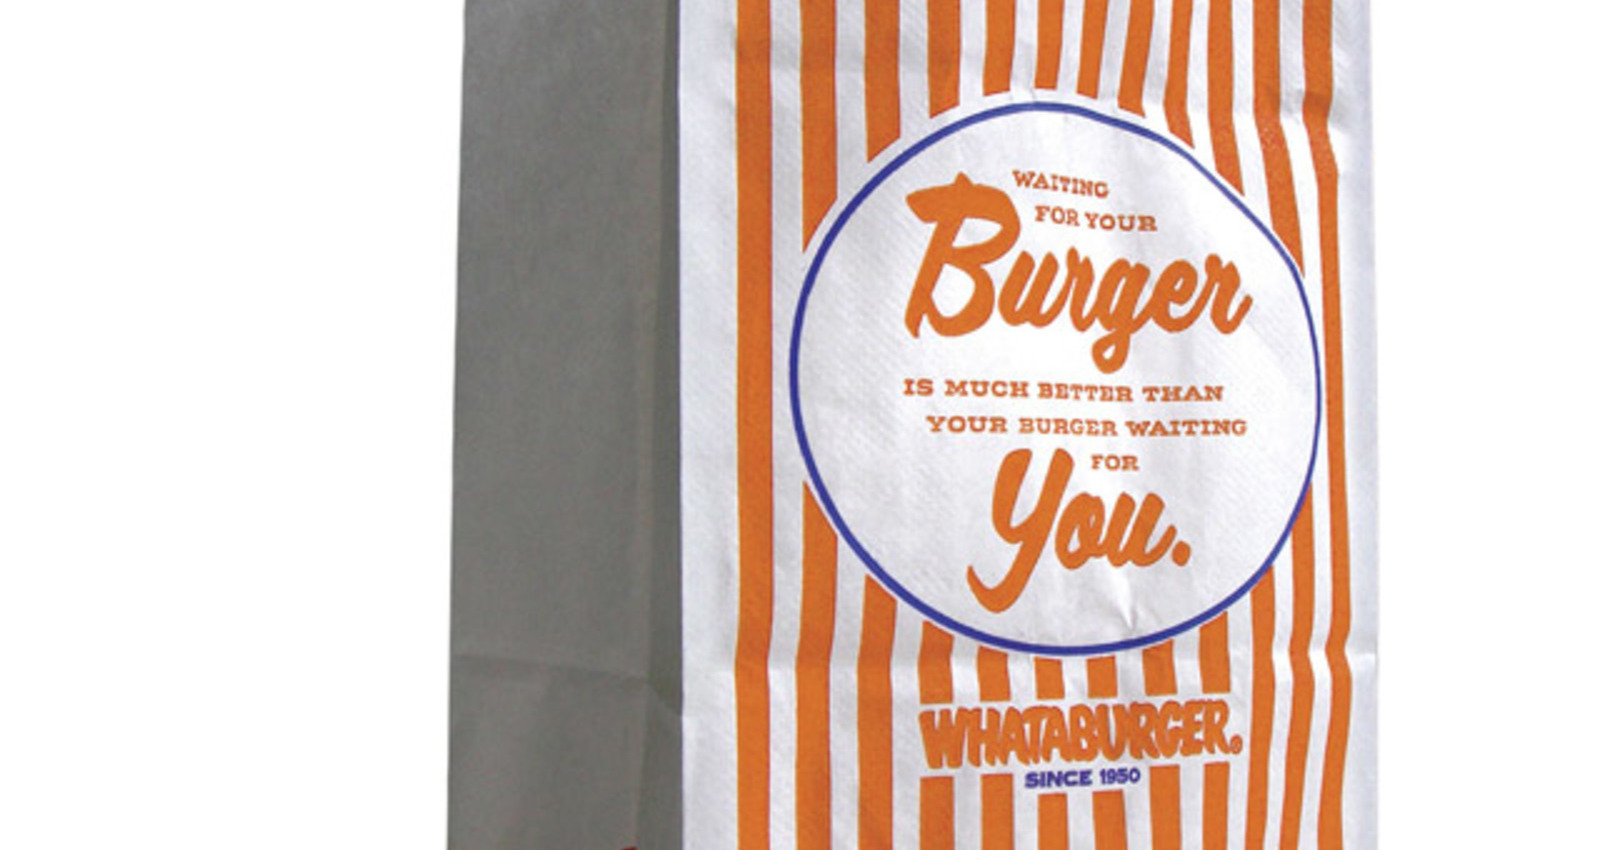 Whataburger To-Go Bag Campaign